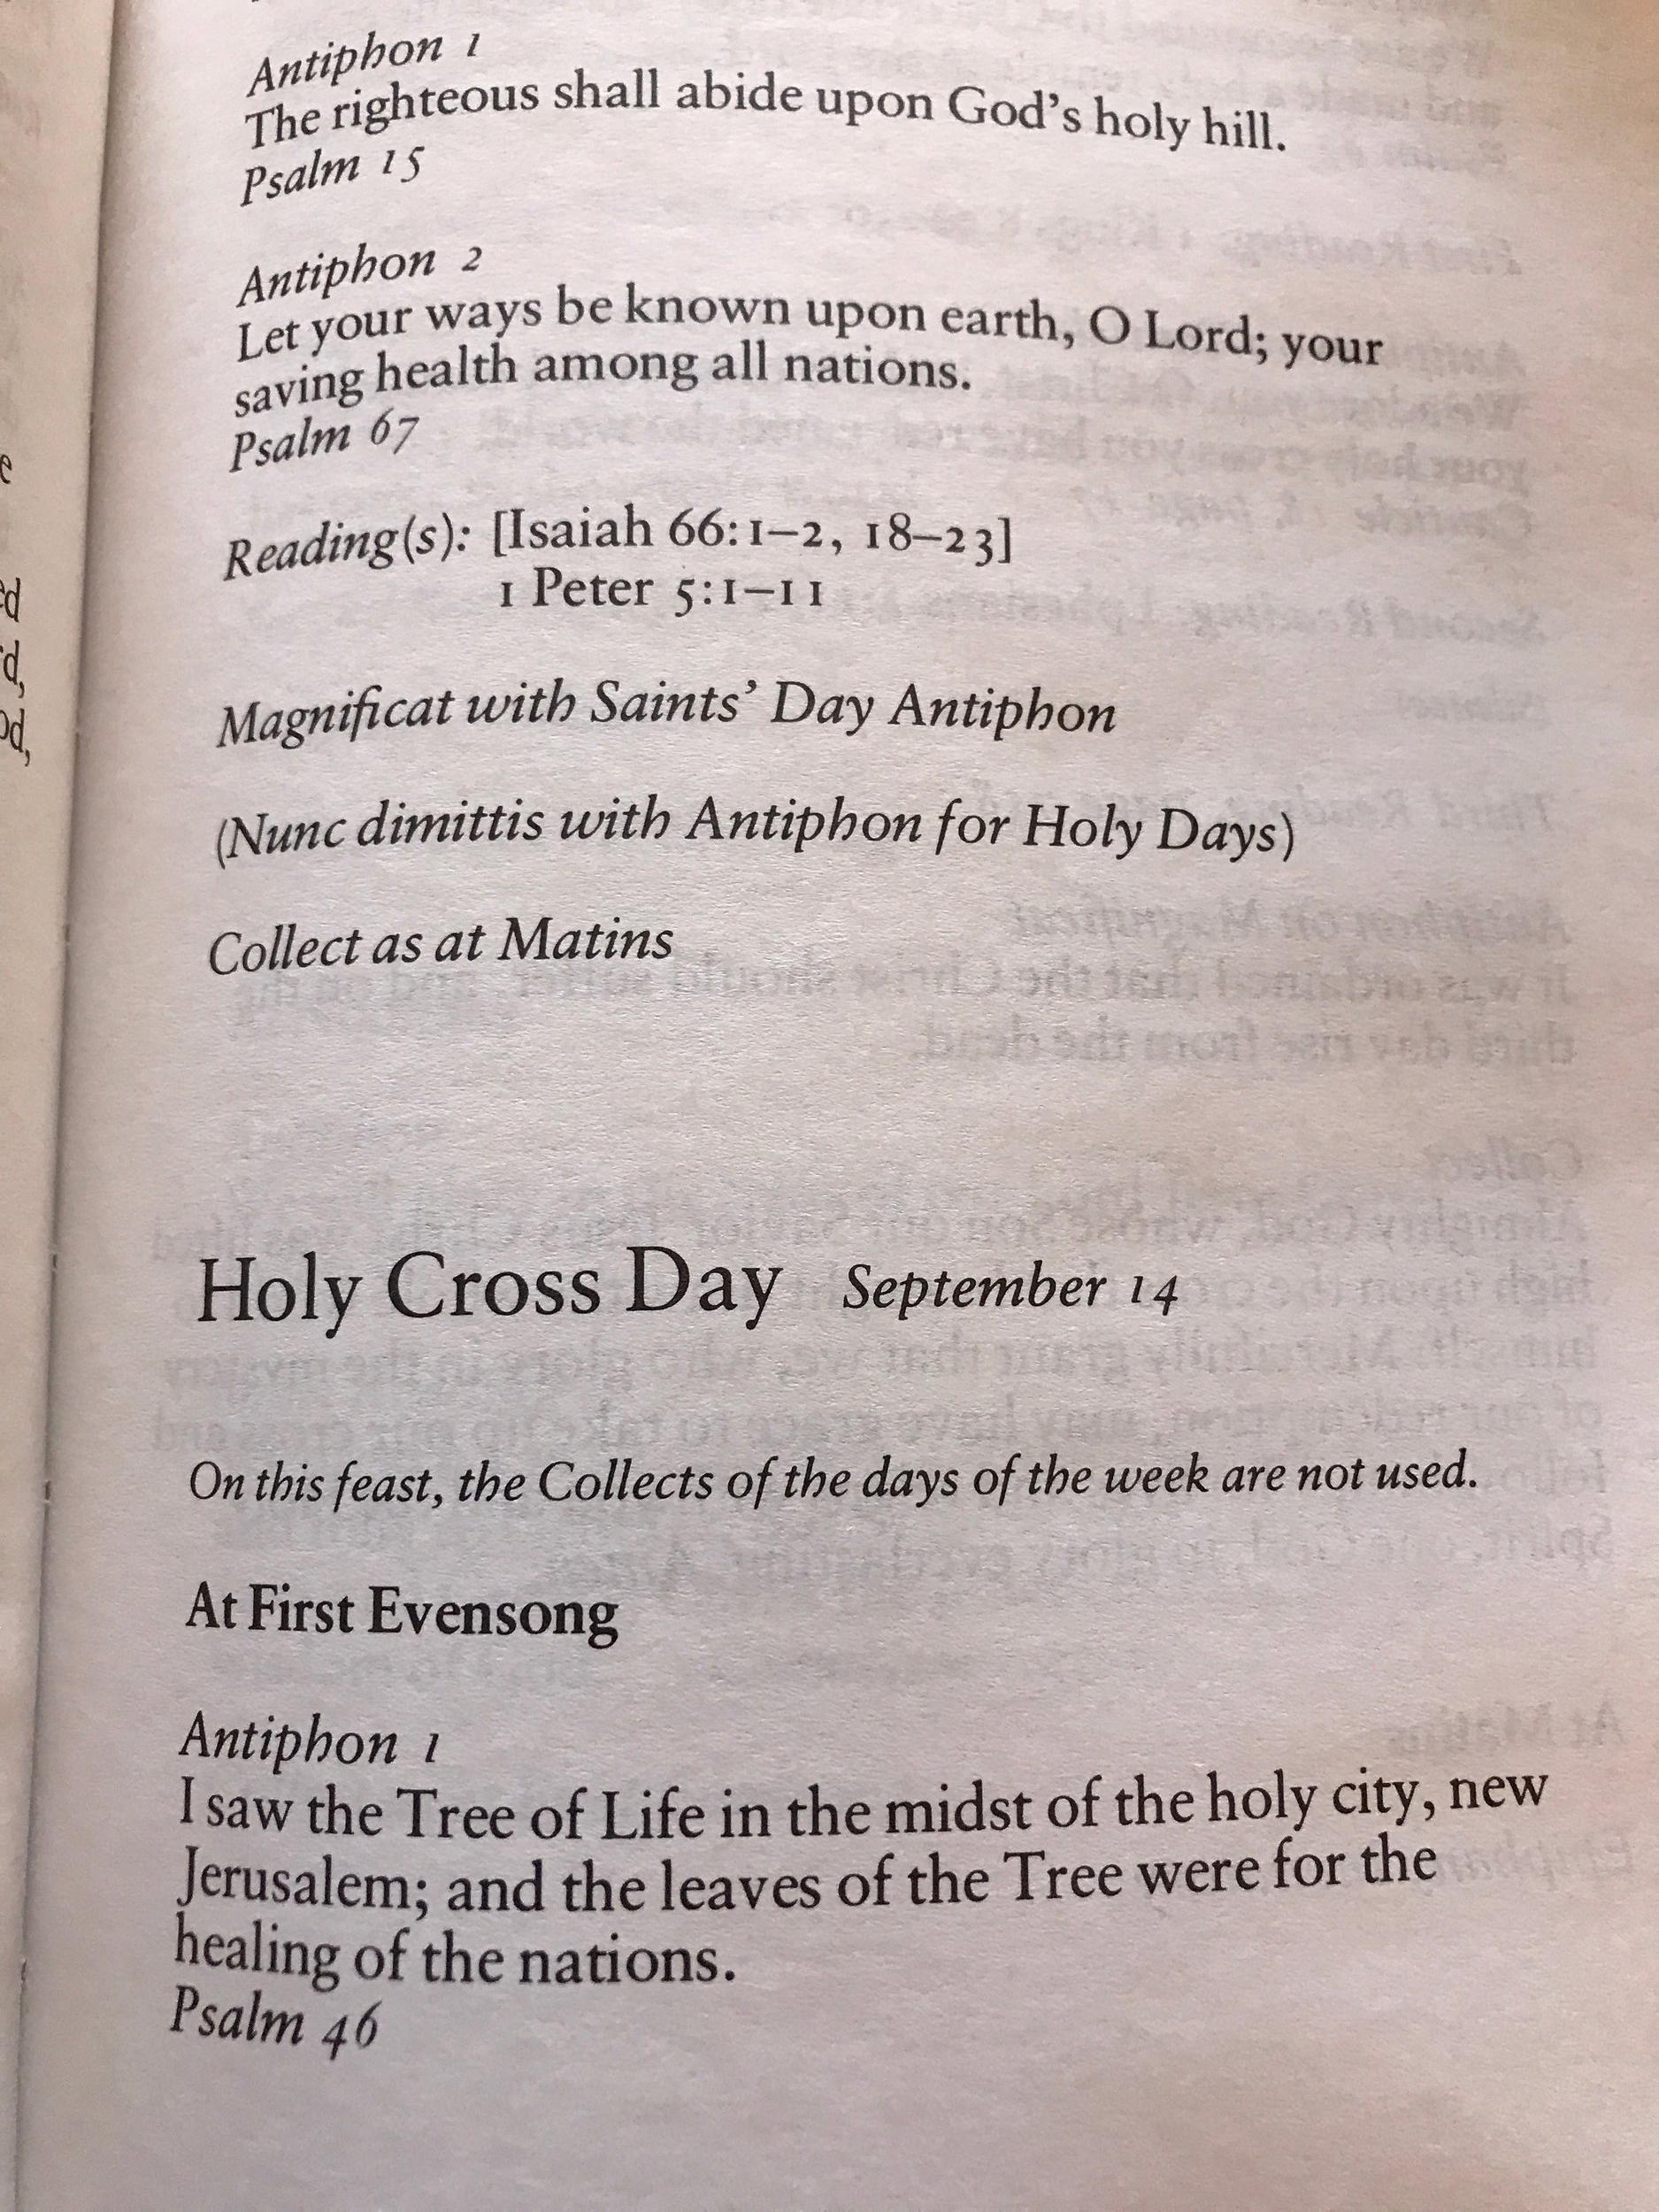 Holy Cross First Evensong